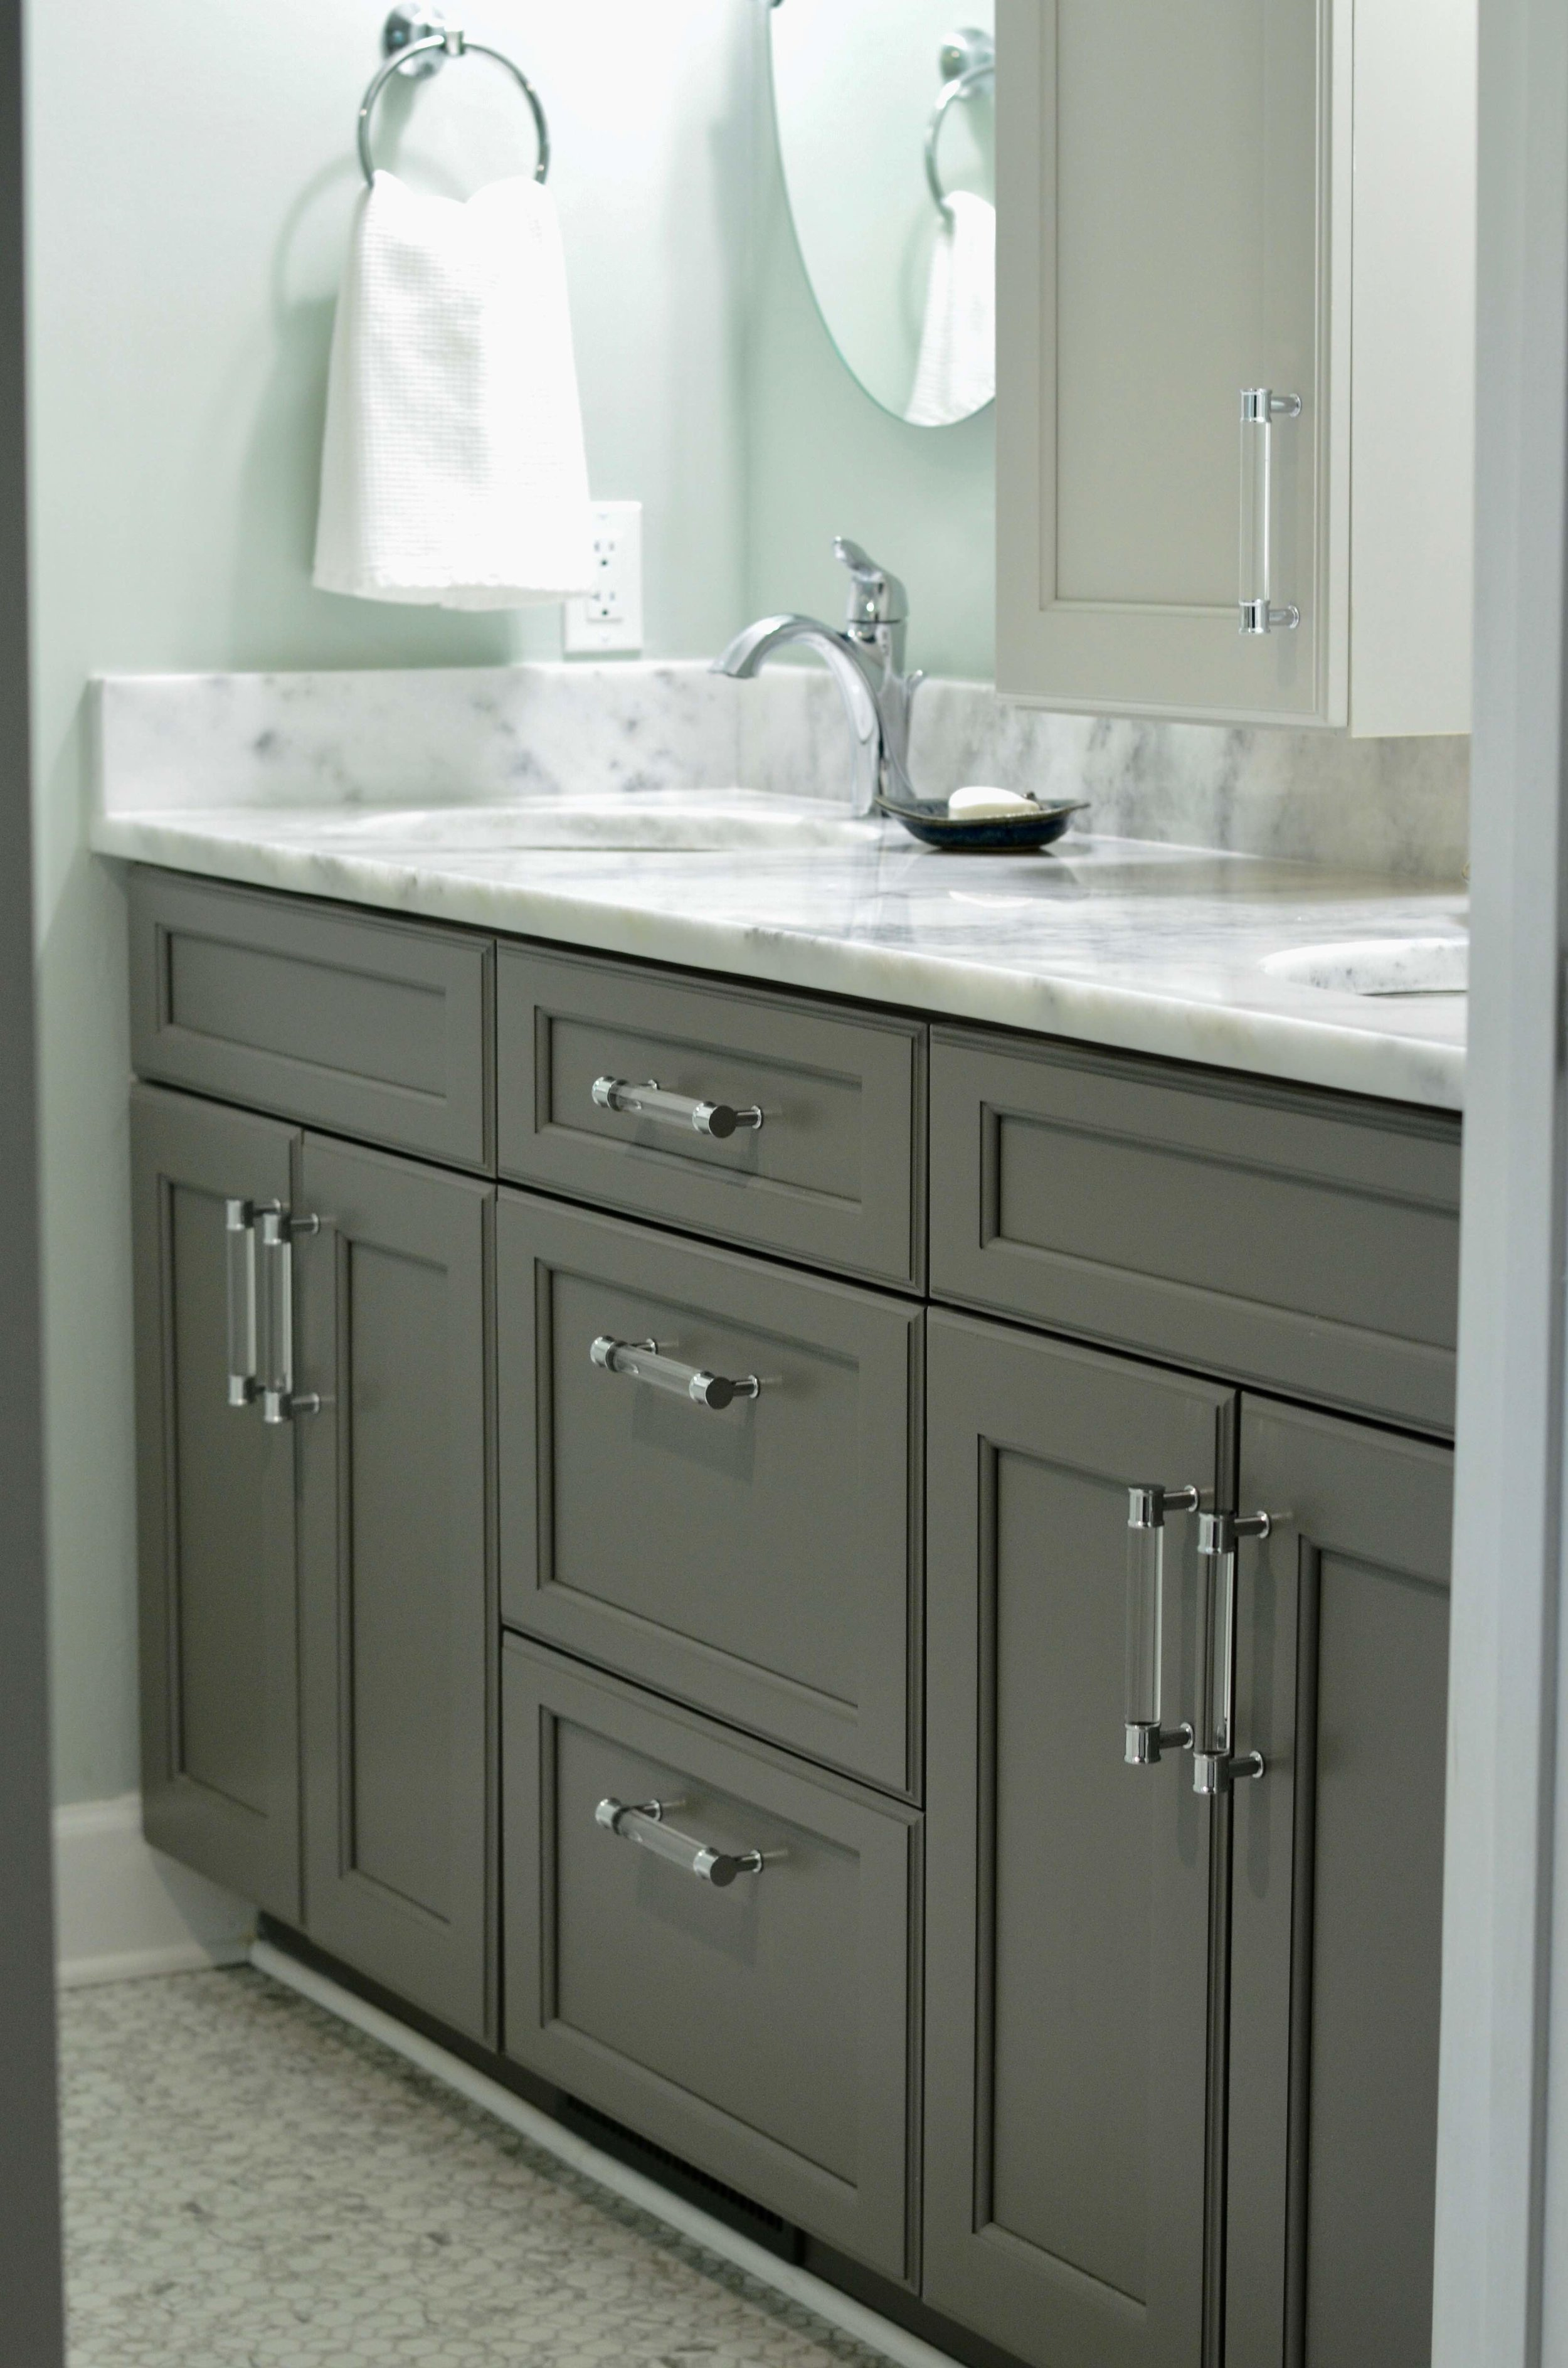 Bathroom renovations in older homes usually provide higher counters, more storage and upgraded finishes that make starting and ending the day much more pleasant!